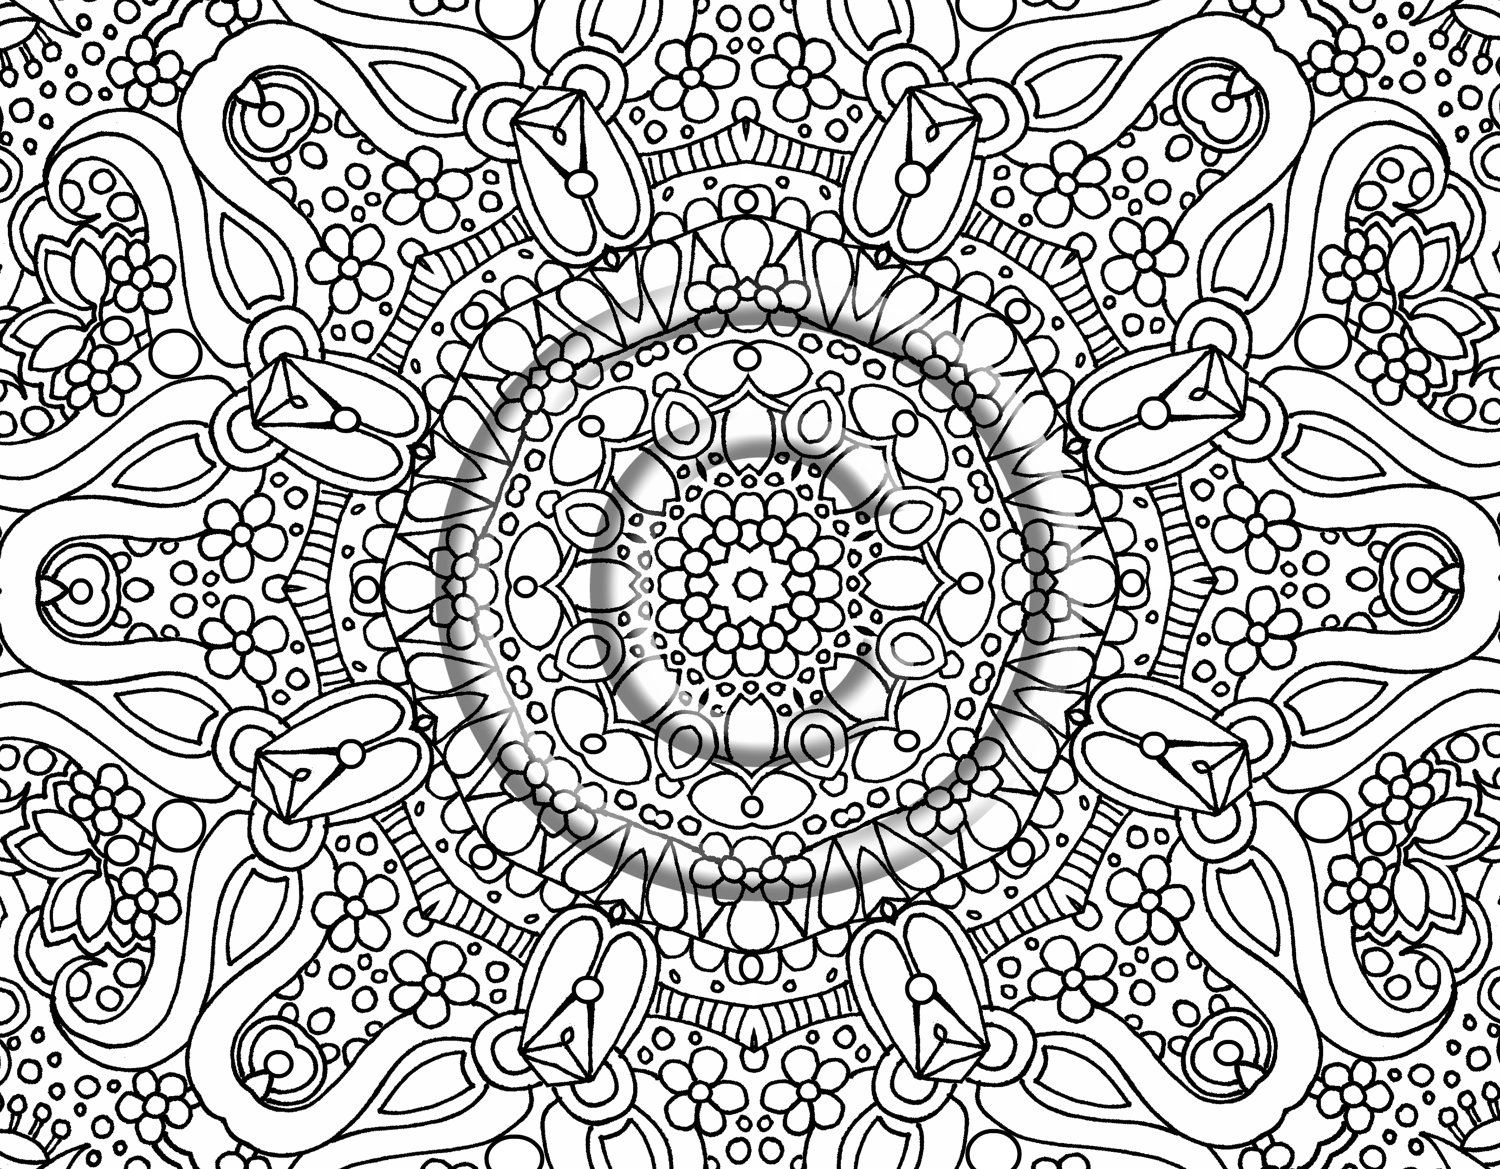 Fr free printable adult coloring pages online - Hard Coloring Pages Hard Coloring Pages Free Adult Coloring Sheets